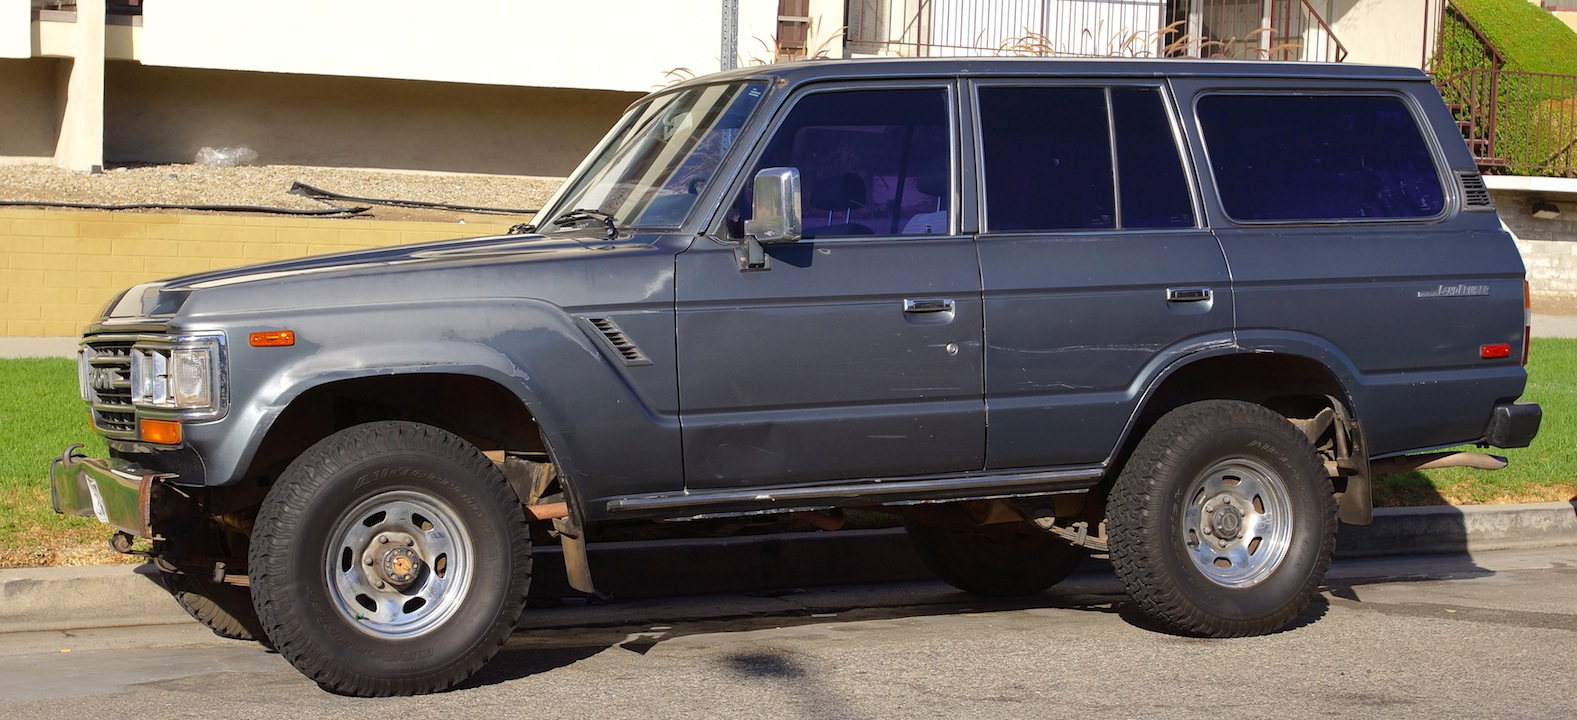 1996 land rover range with 1988 Toyota Land Cruiser Pictures C10870 Pi36237646 on Land Rover Discovery 5 Door 1994 97 Wallpapers 118890 besides 1994 Land Rover Defender 90 Wiring Diagram likewise DYC101420 Trim Clip Freelander Arch additionally Range Rover Classic Two Door as well 1995 C36 Amg Sedan.